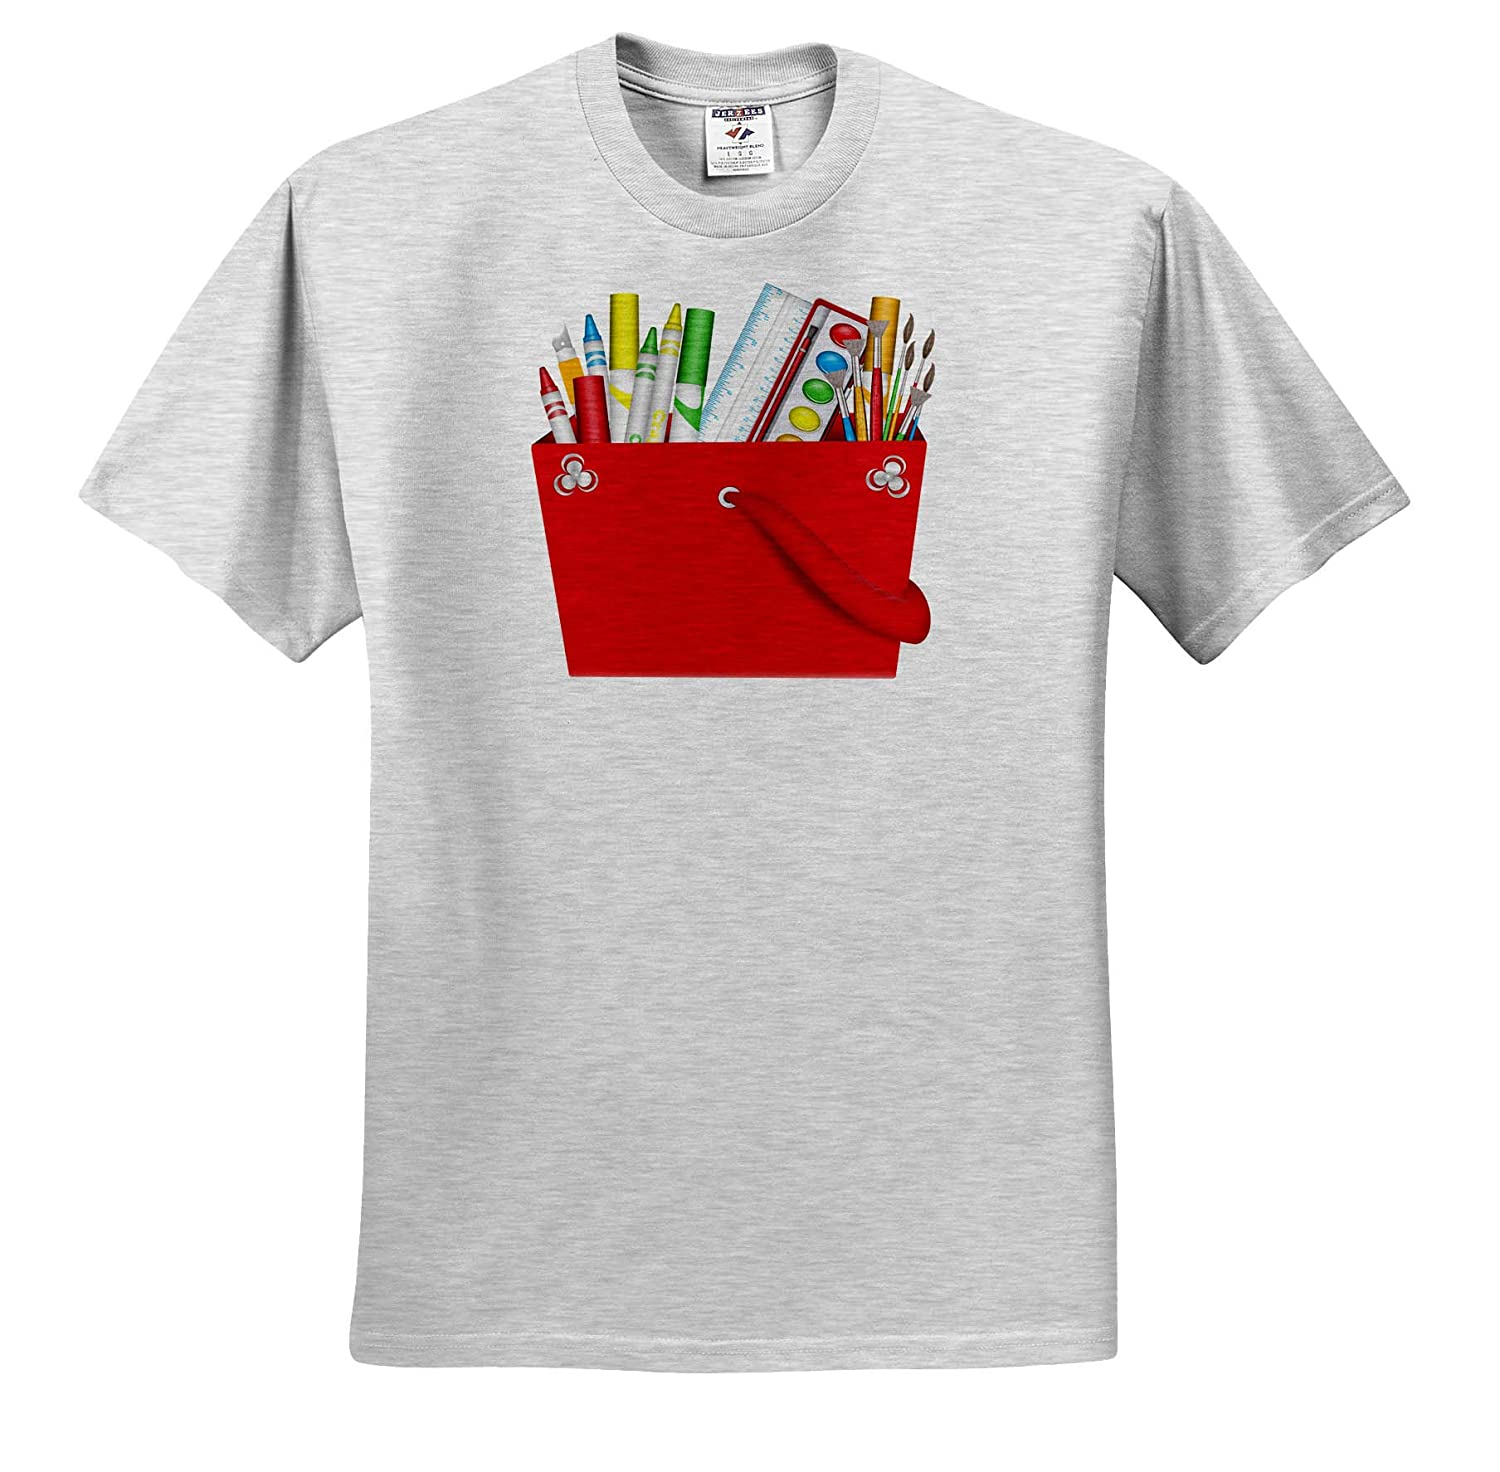 Adult T-Shirt XL Illustrations A Tote of Art Supplies Illustration 3dRose Anne Marie Baugh ts/_317944